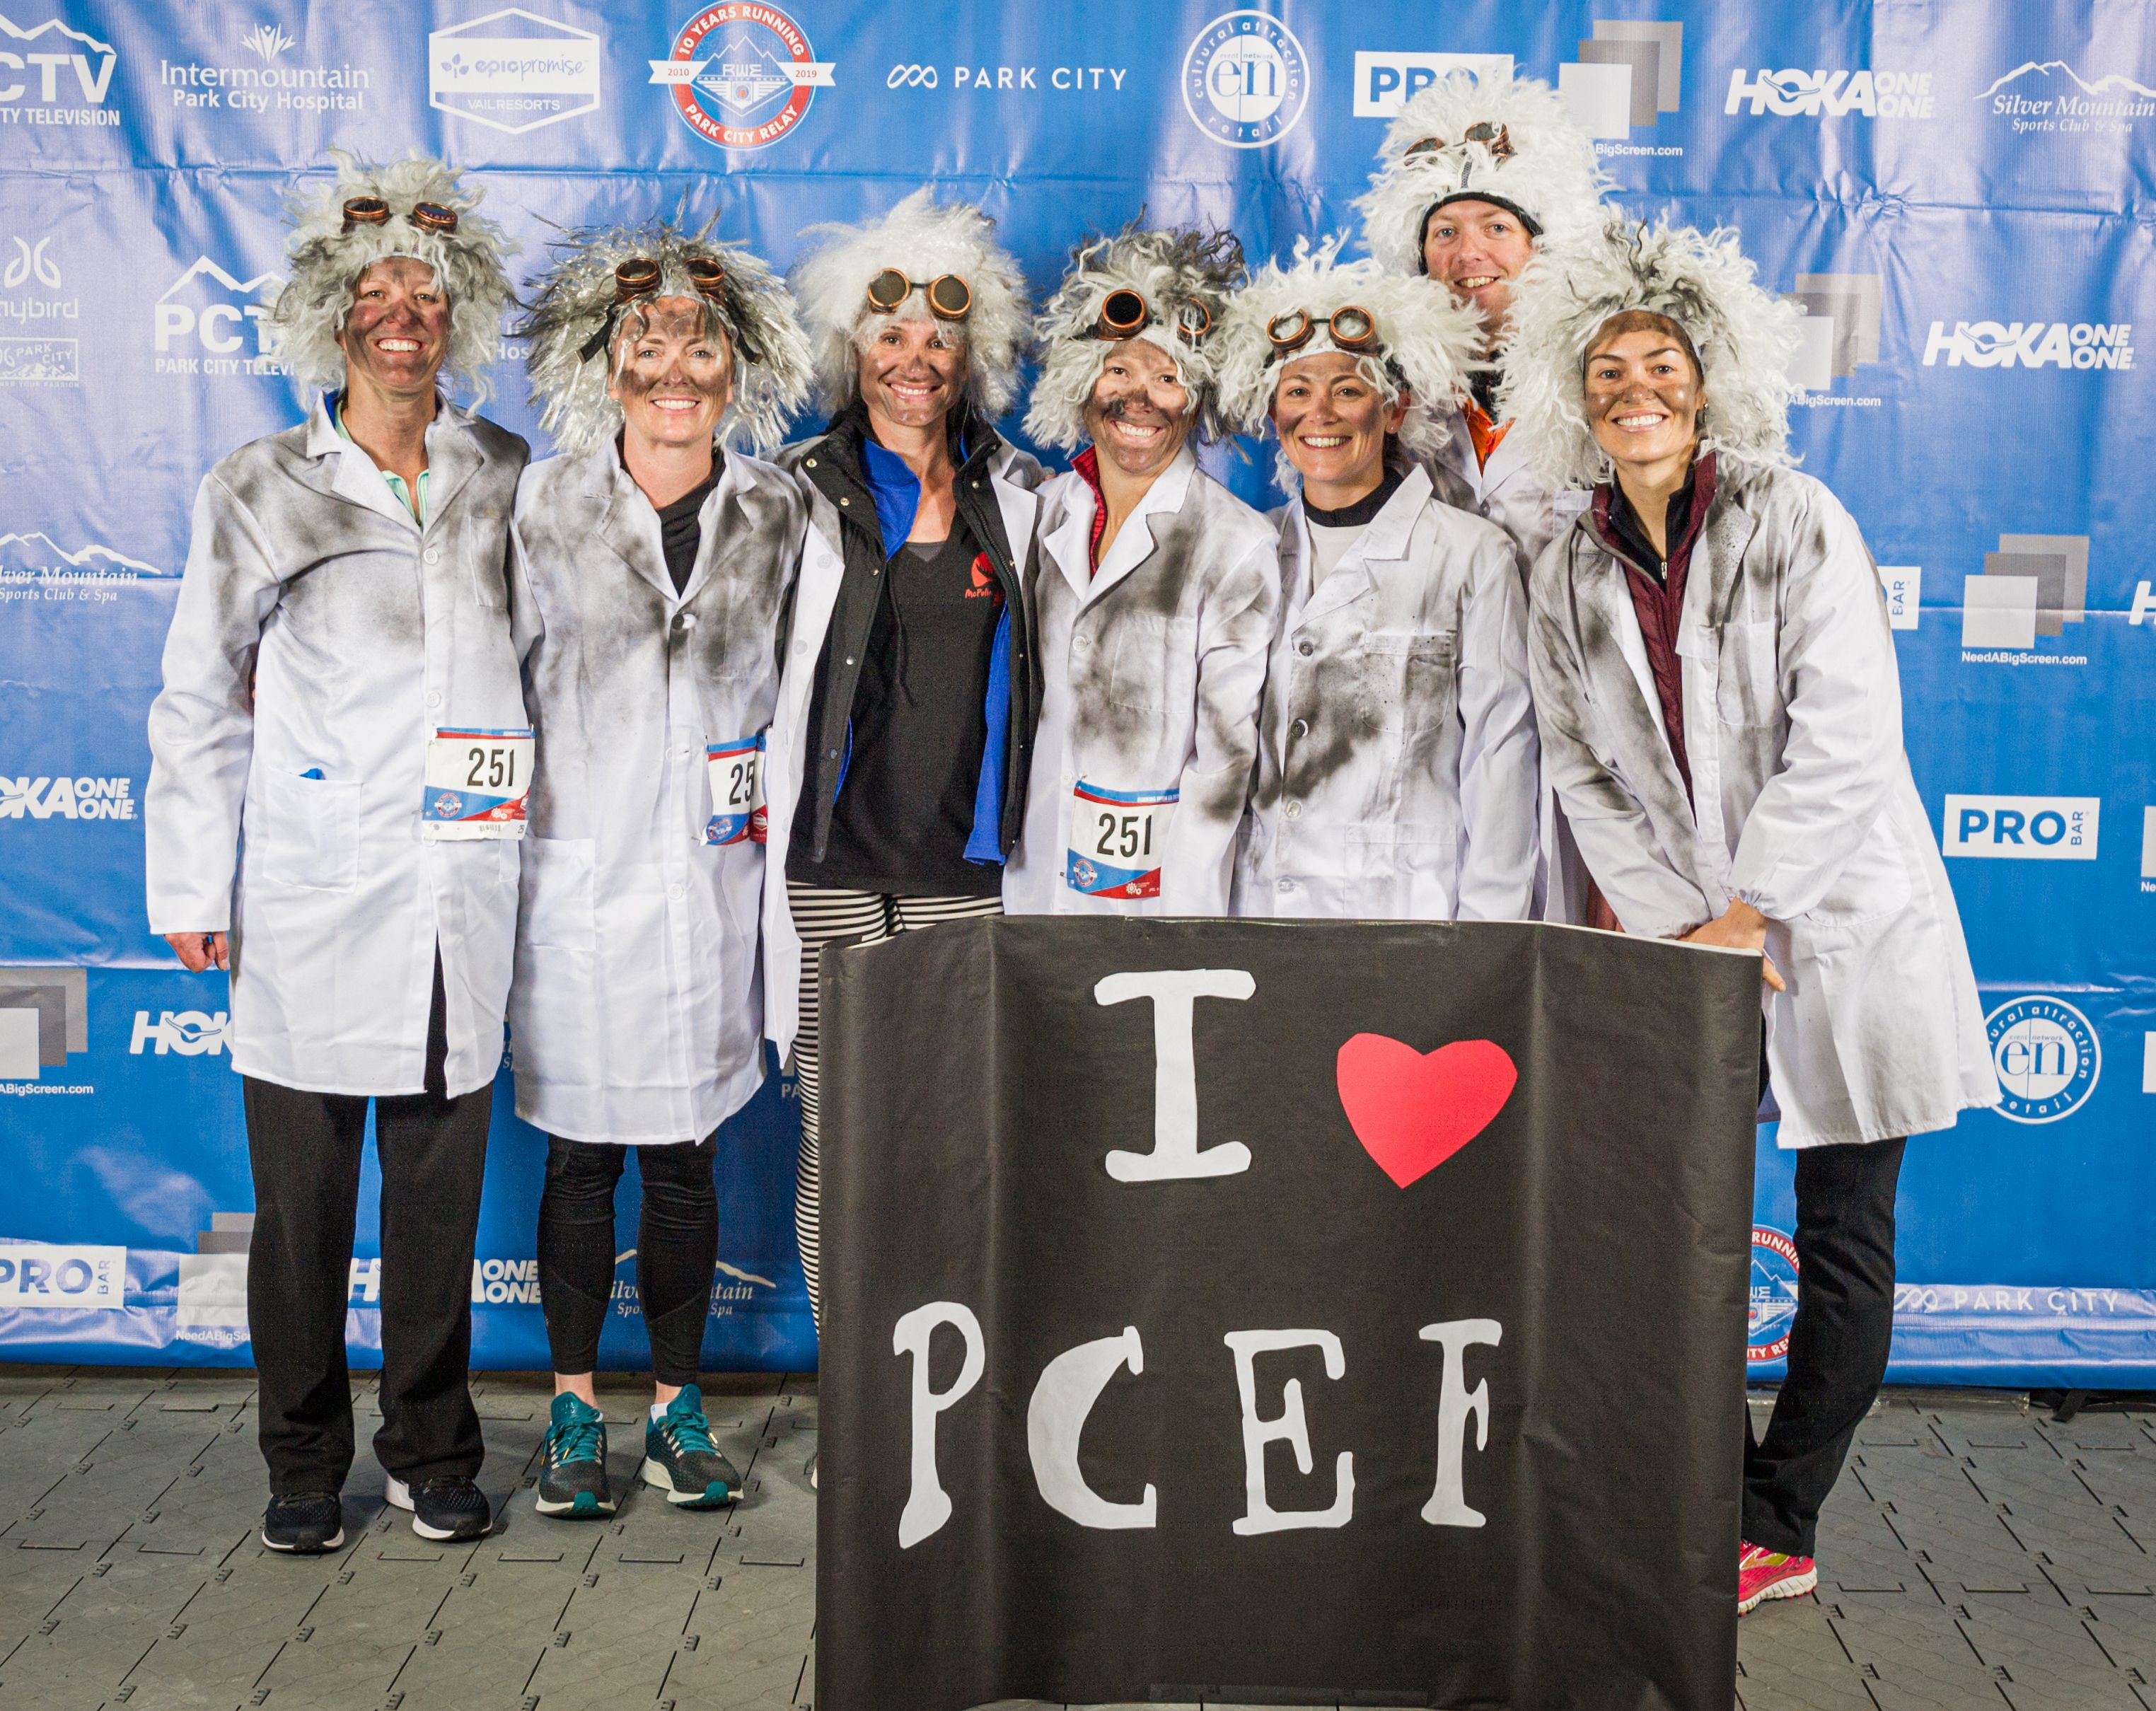 PCEF EXPANDS URGENT FUNDING TO SUPPORT PARK CITY STUDENTS AND TEACHERS